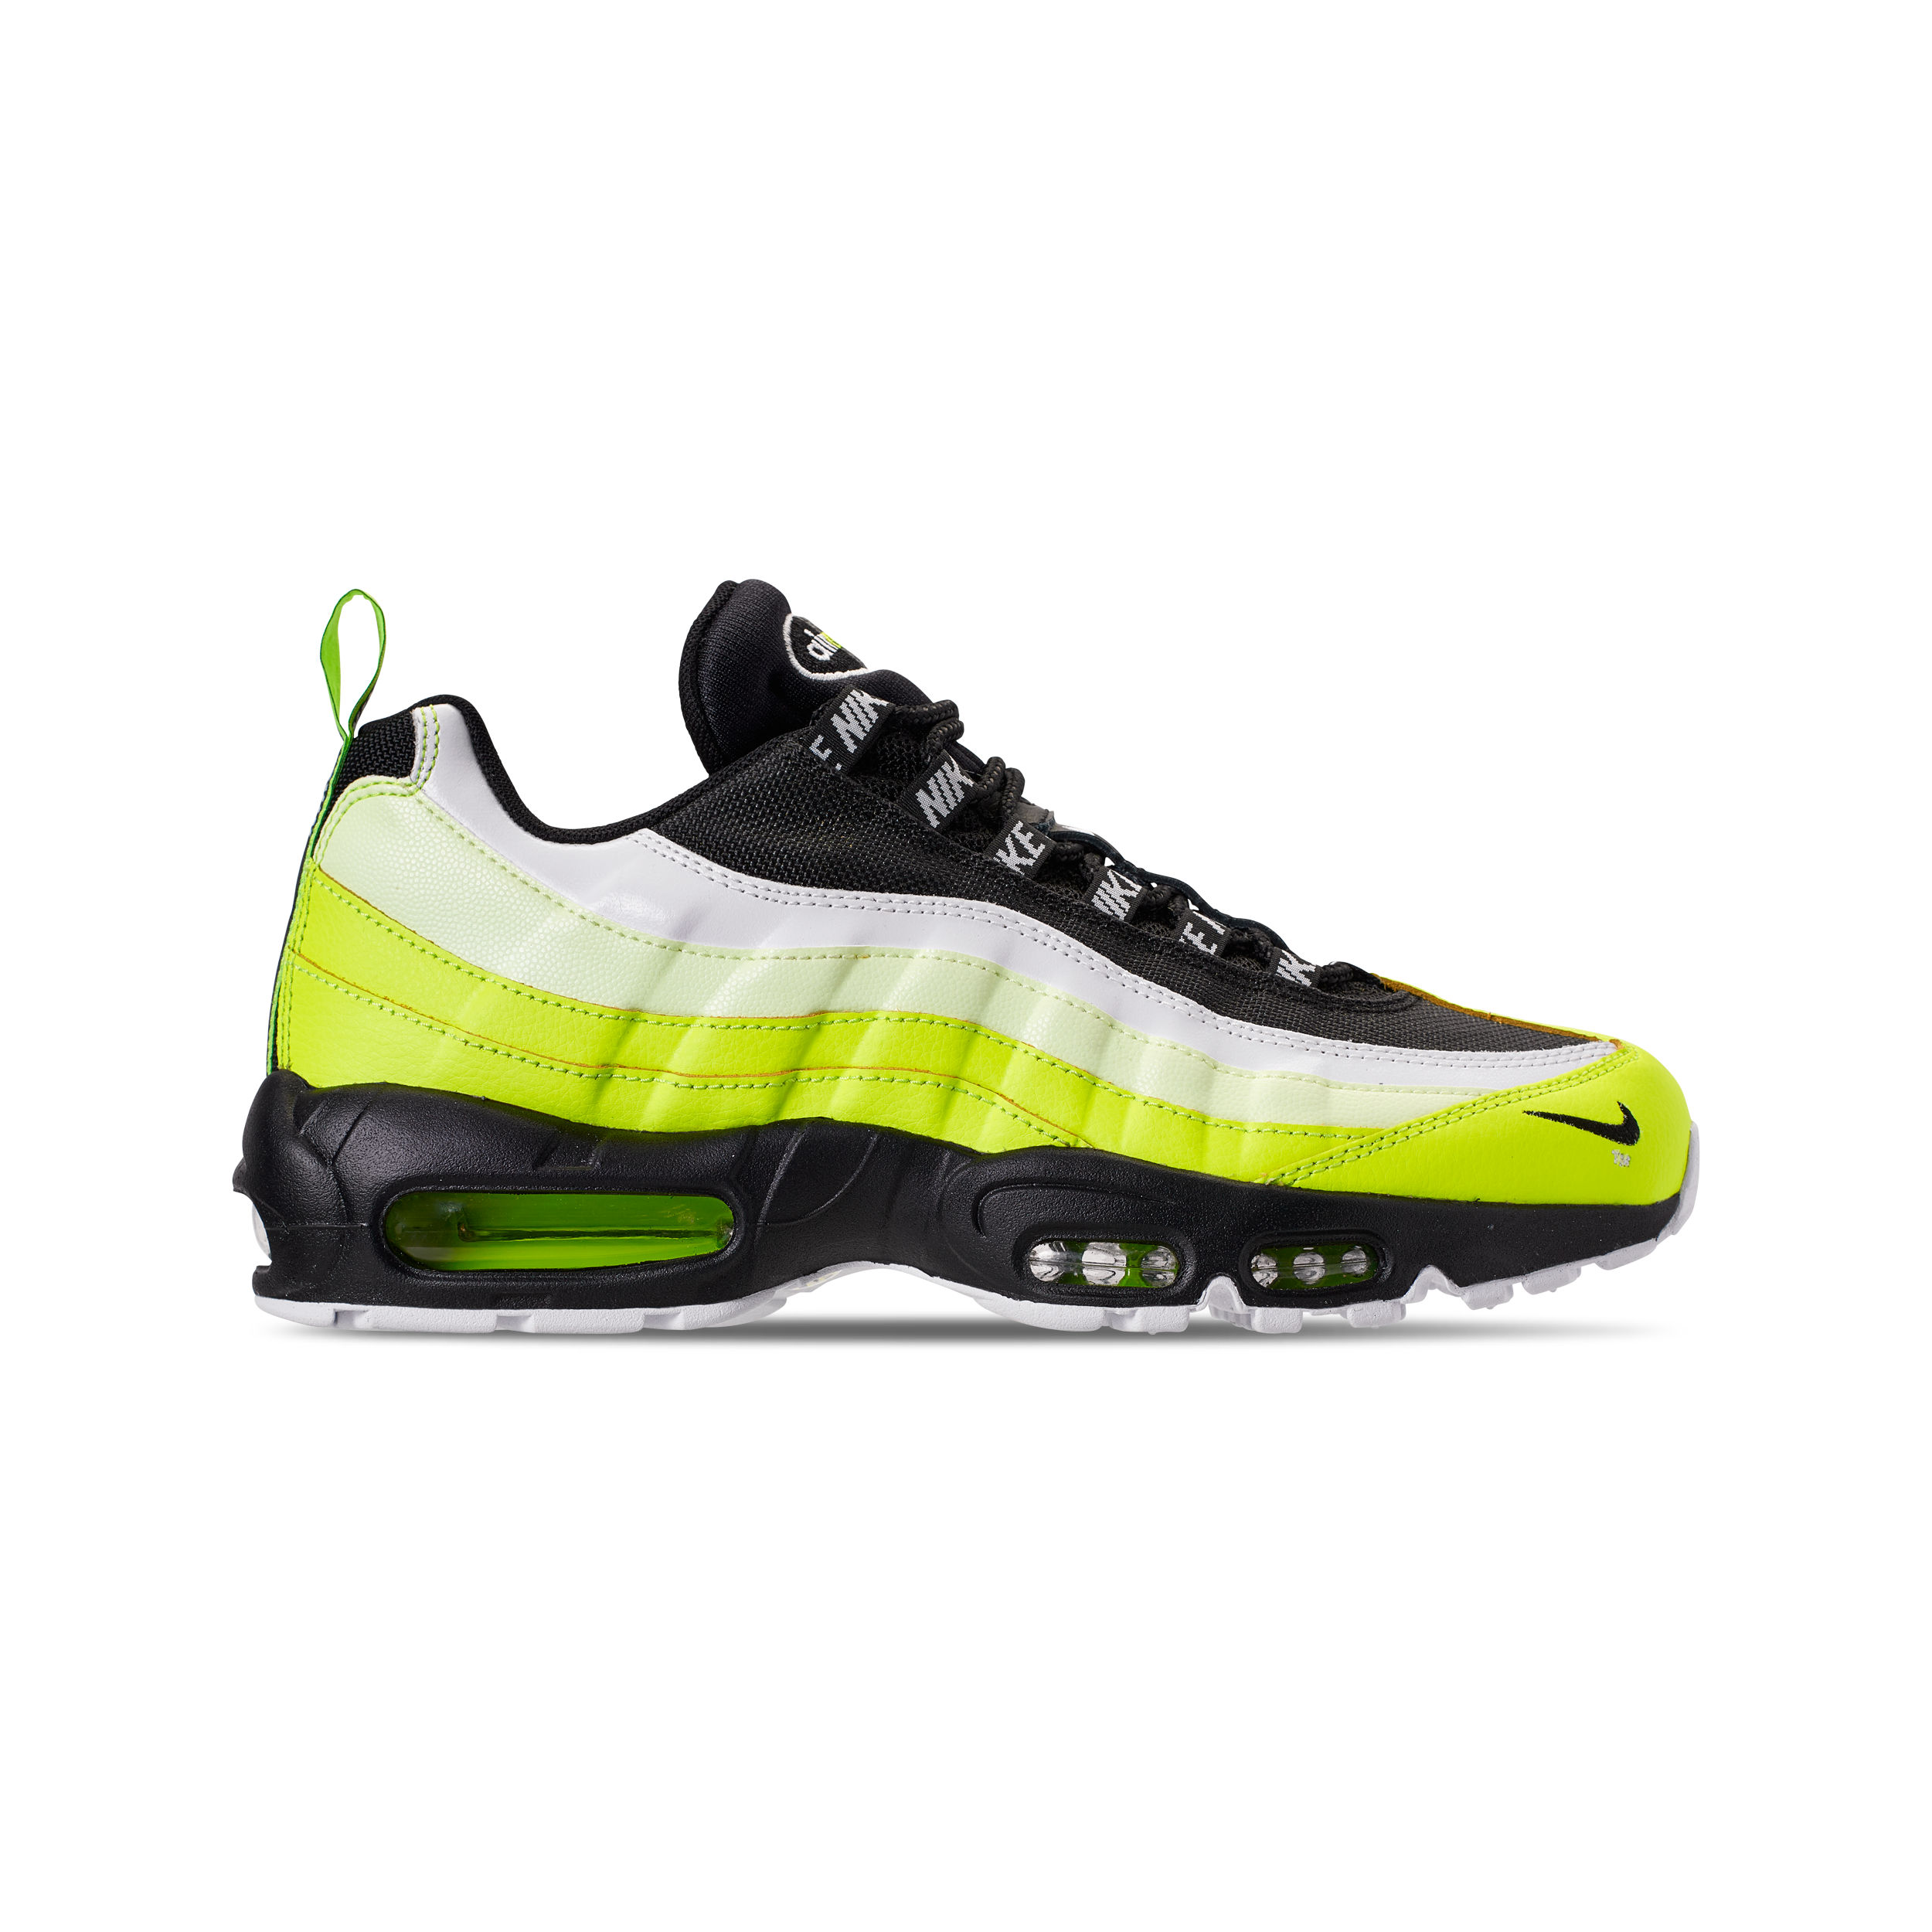 Nike Vapormax 2 All White Premium Air Max 95 Volt Black Glow Barely Off